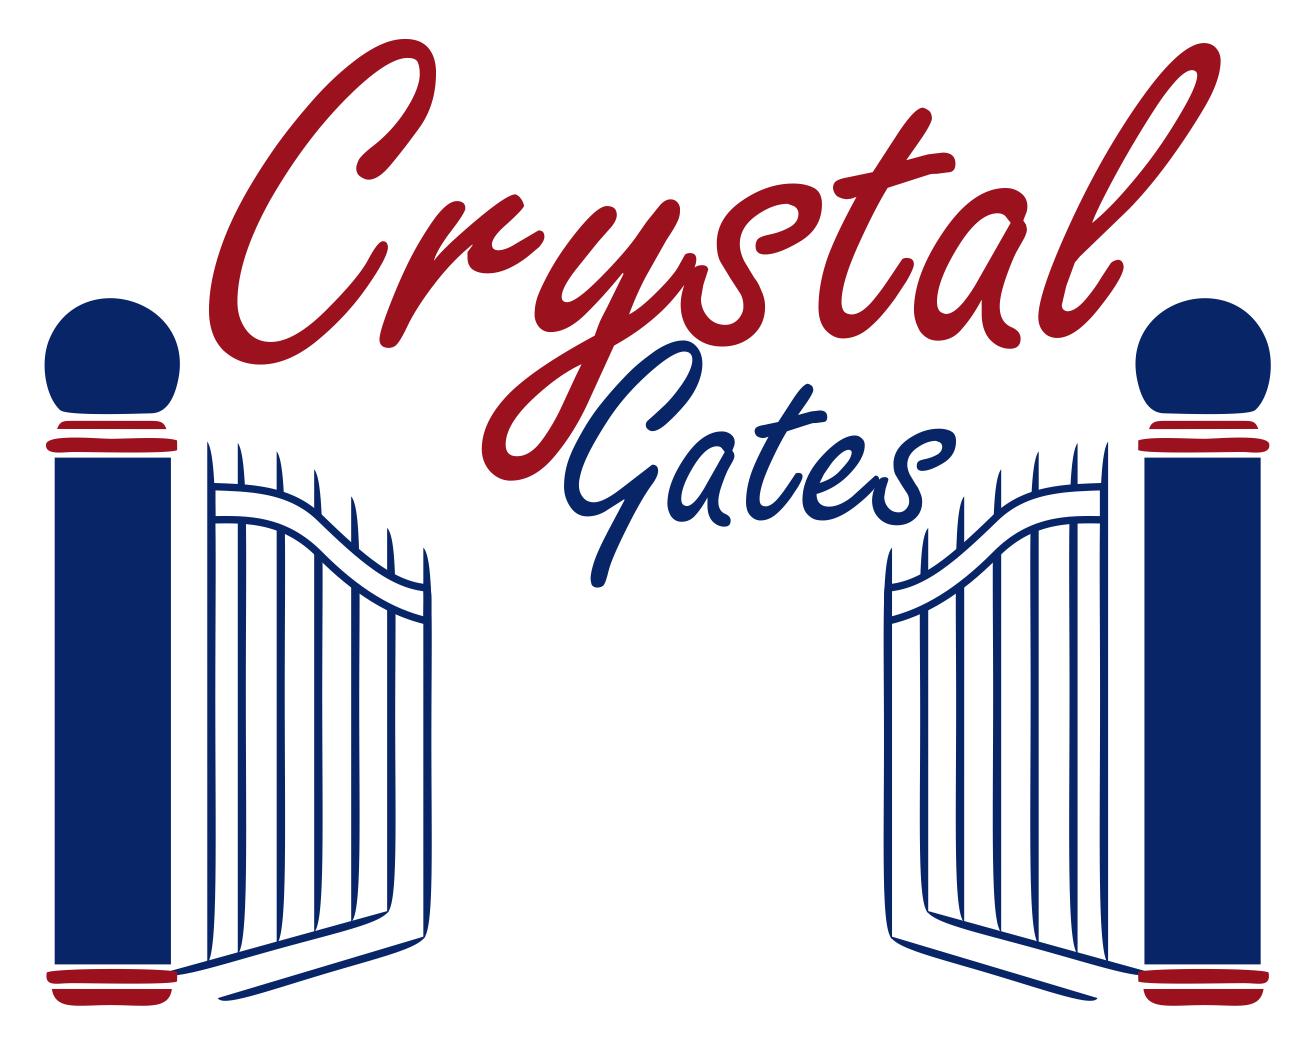 Crystal Gates